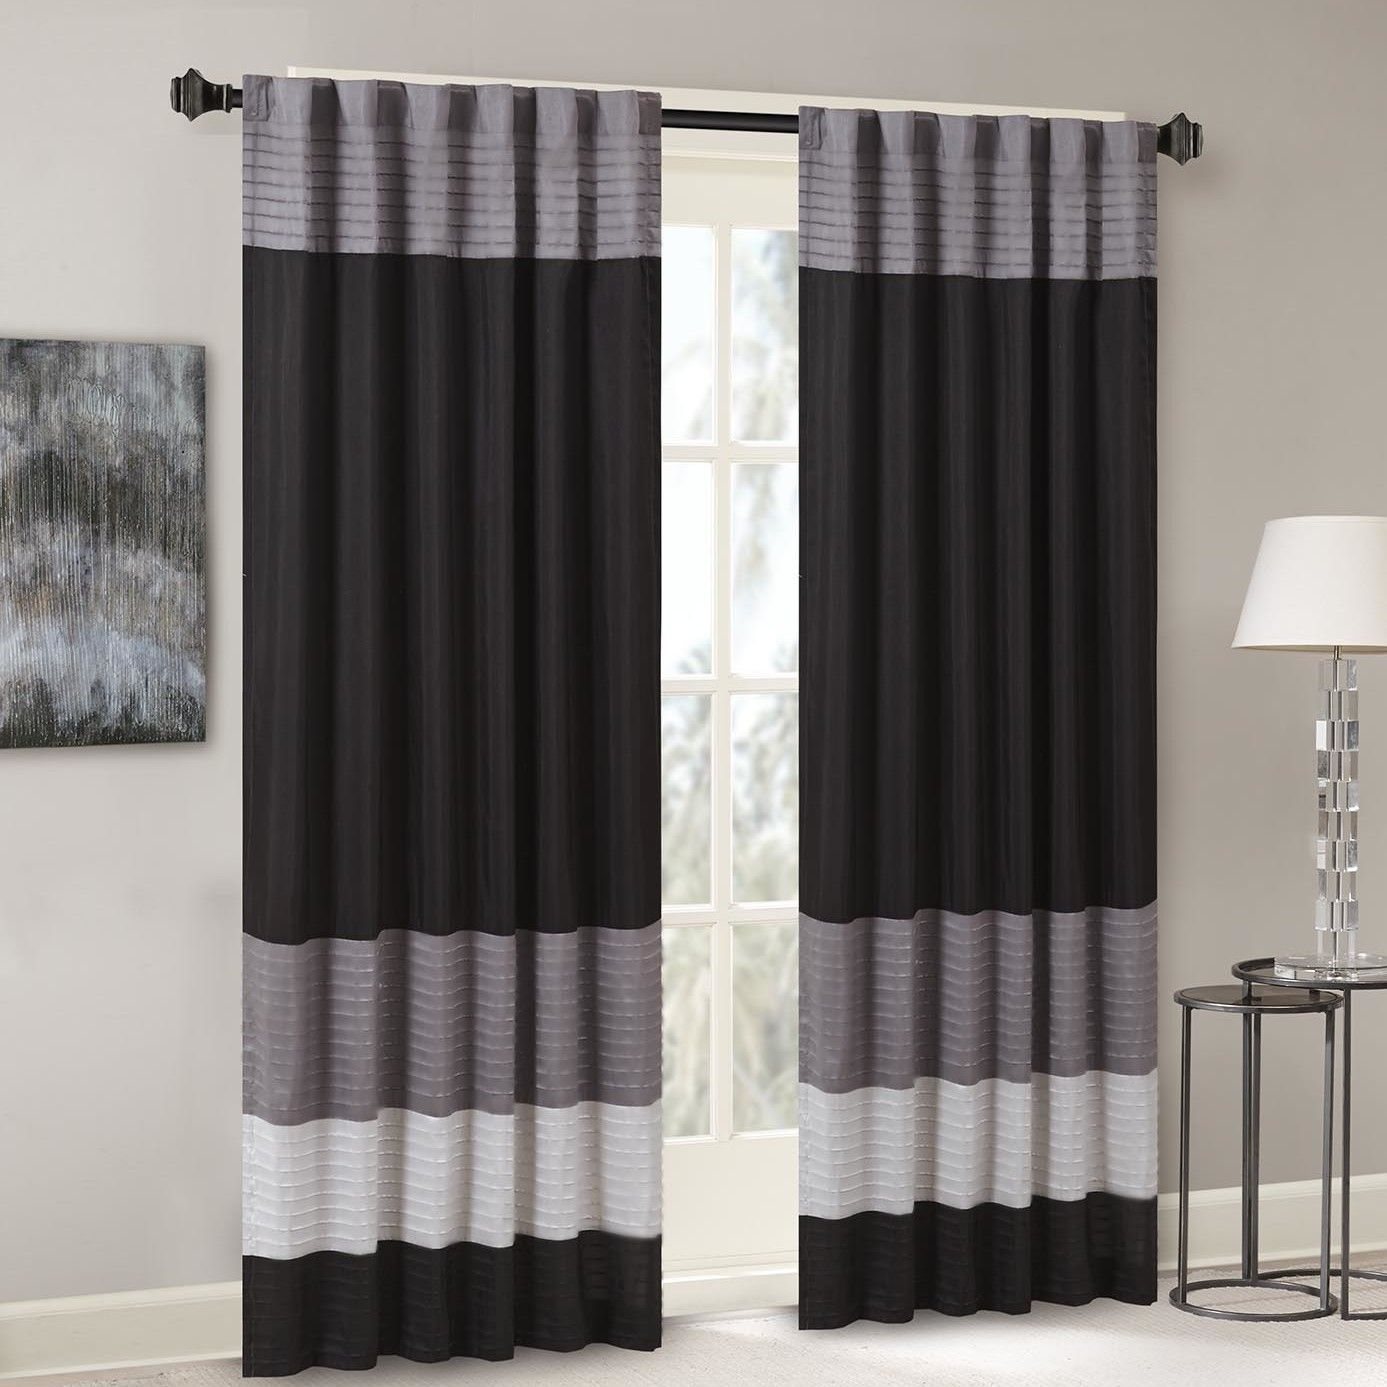 curtain window picture elrene p sheer of melody single grey panel grommet top